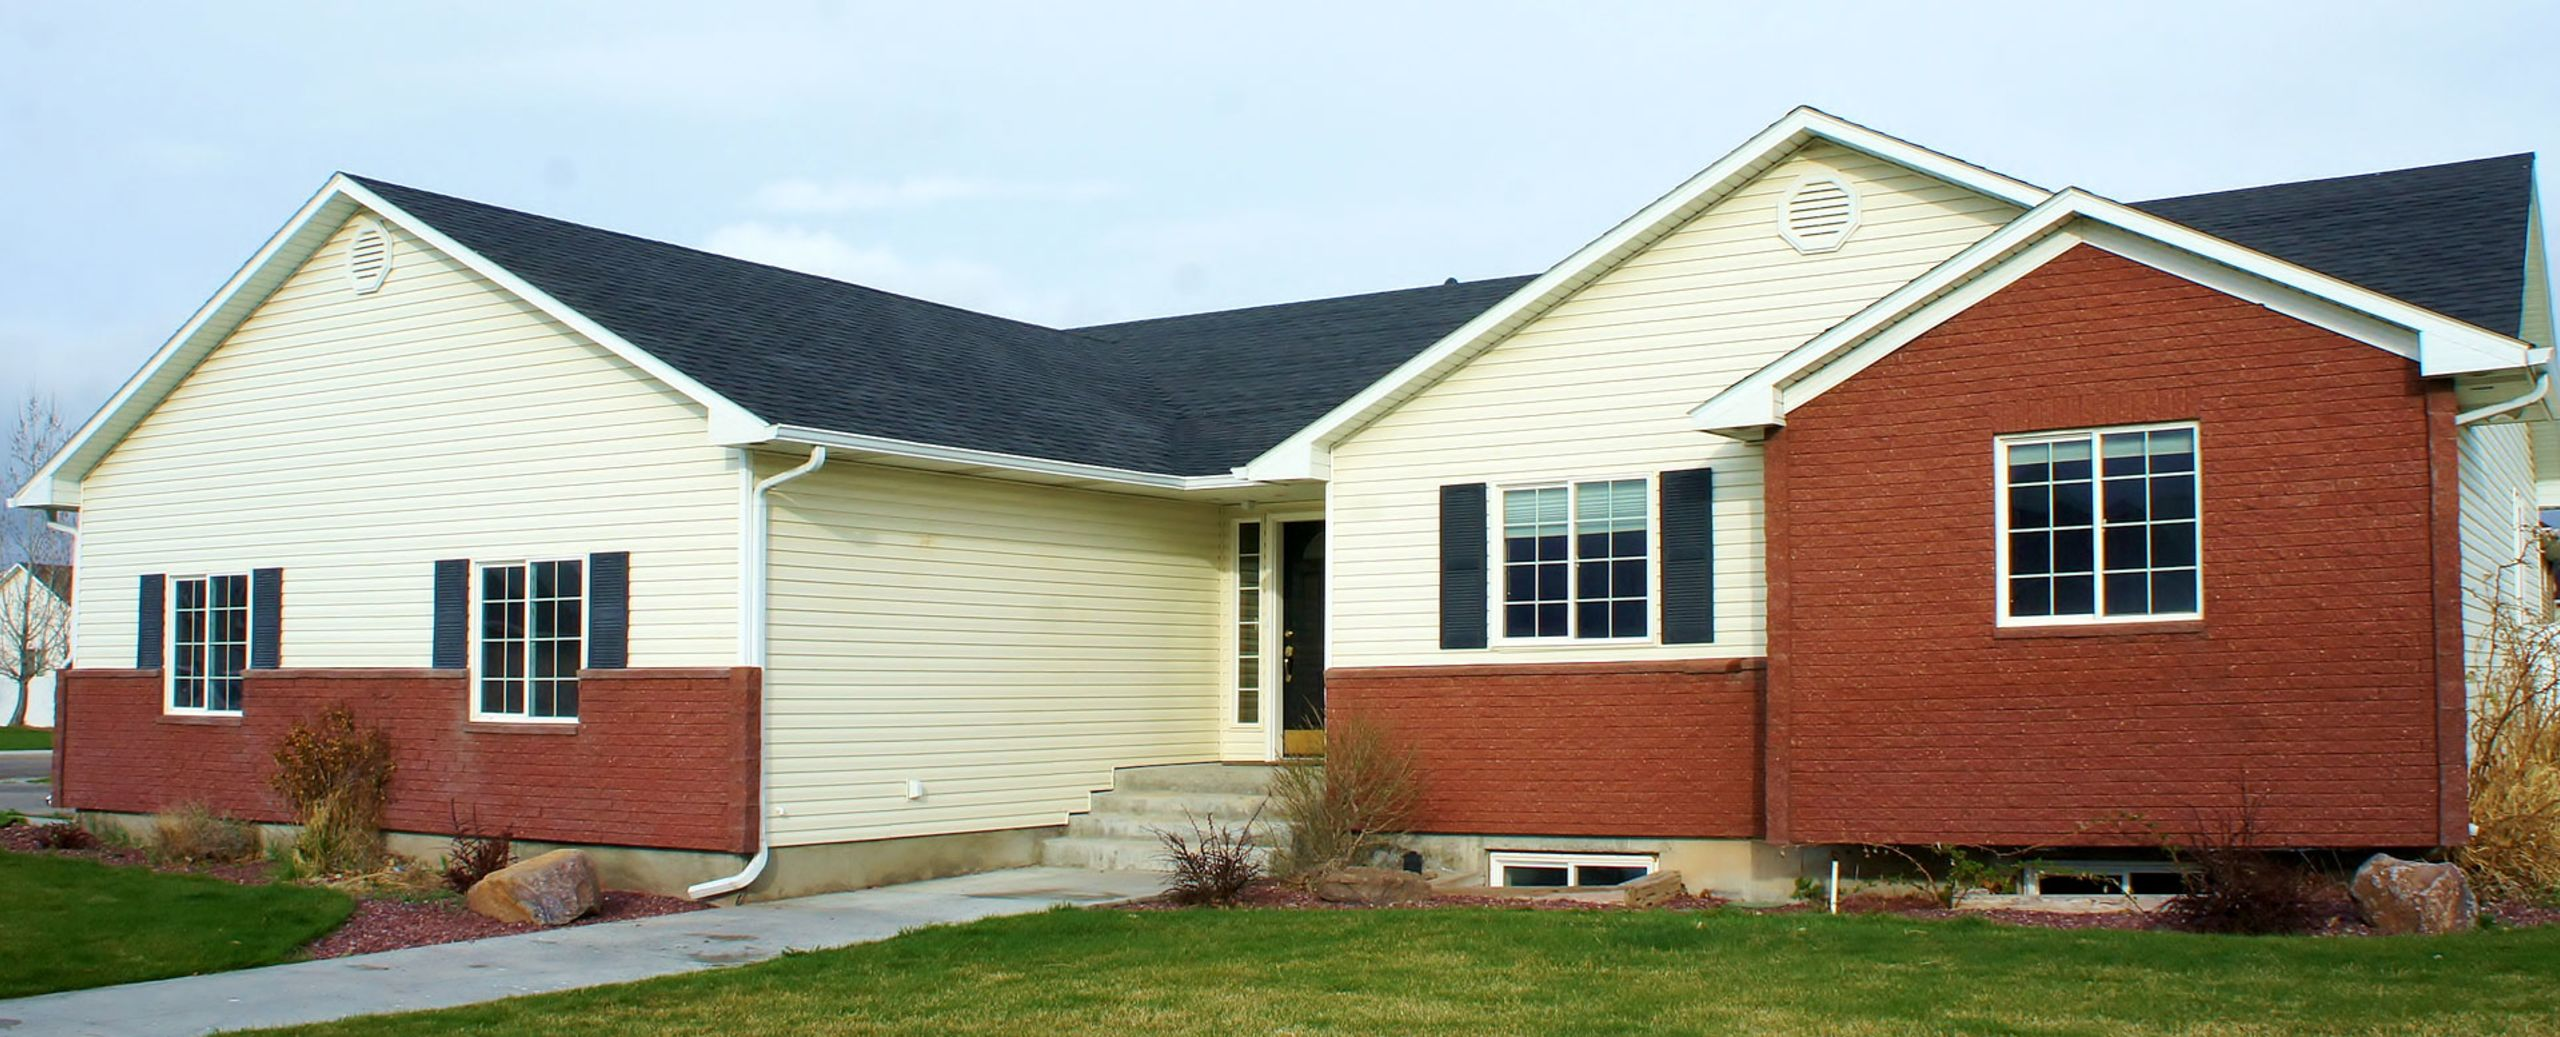 Chalmers Realty Group - Homes for Sale - Buy Home in Idaho Falls